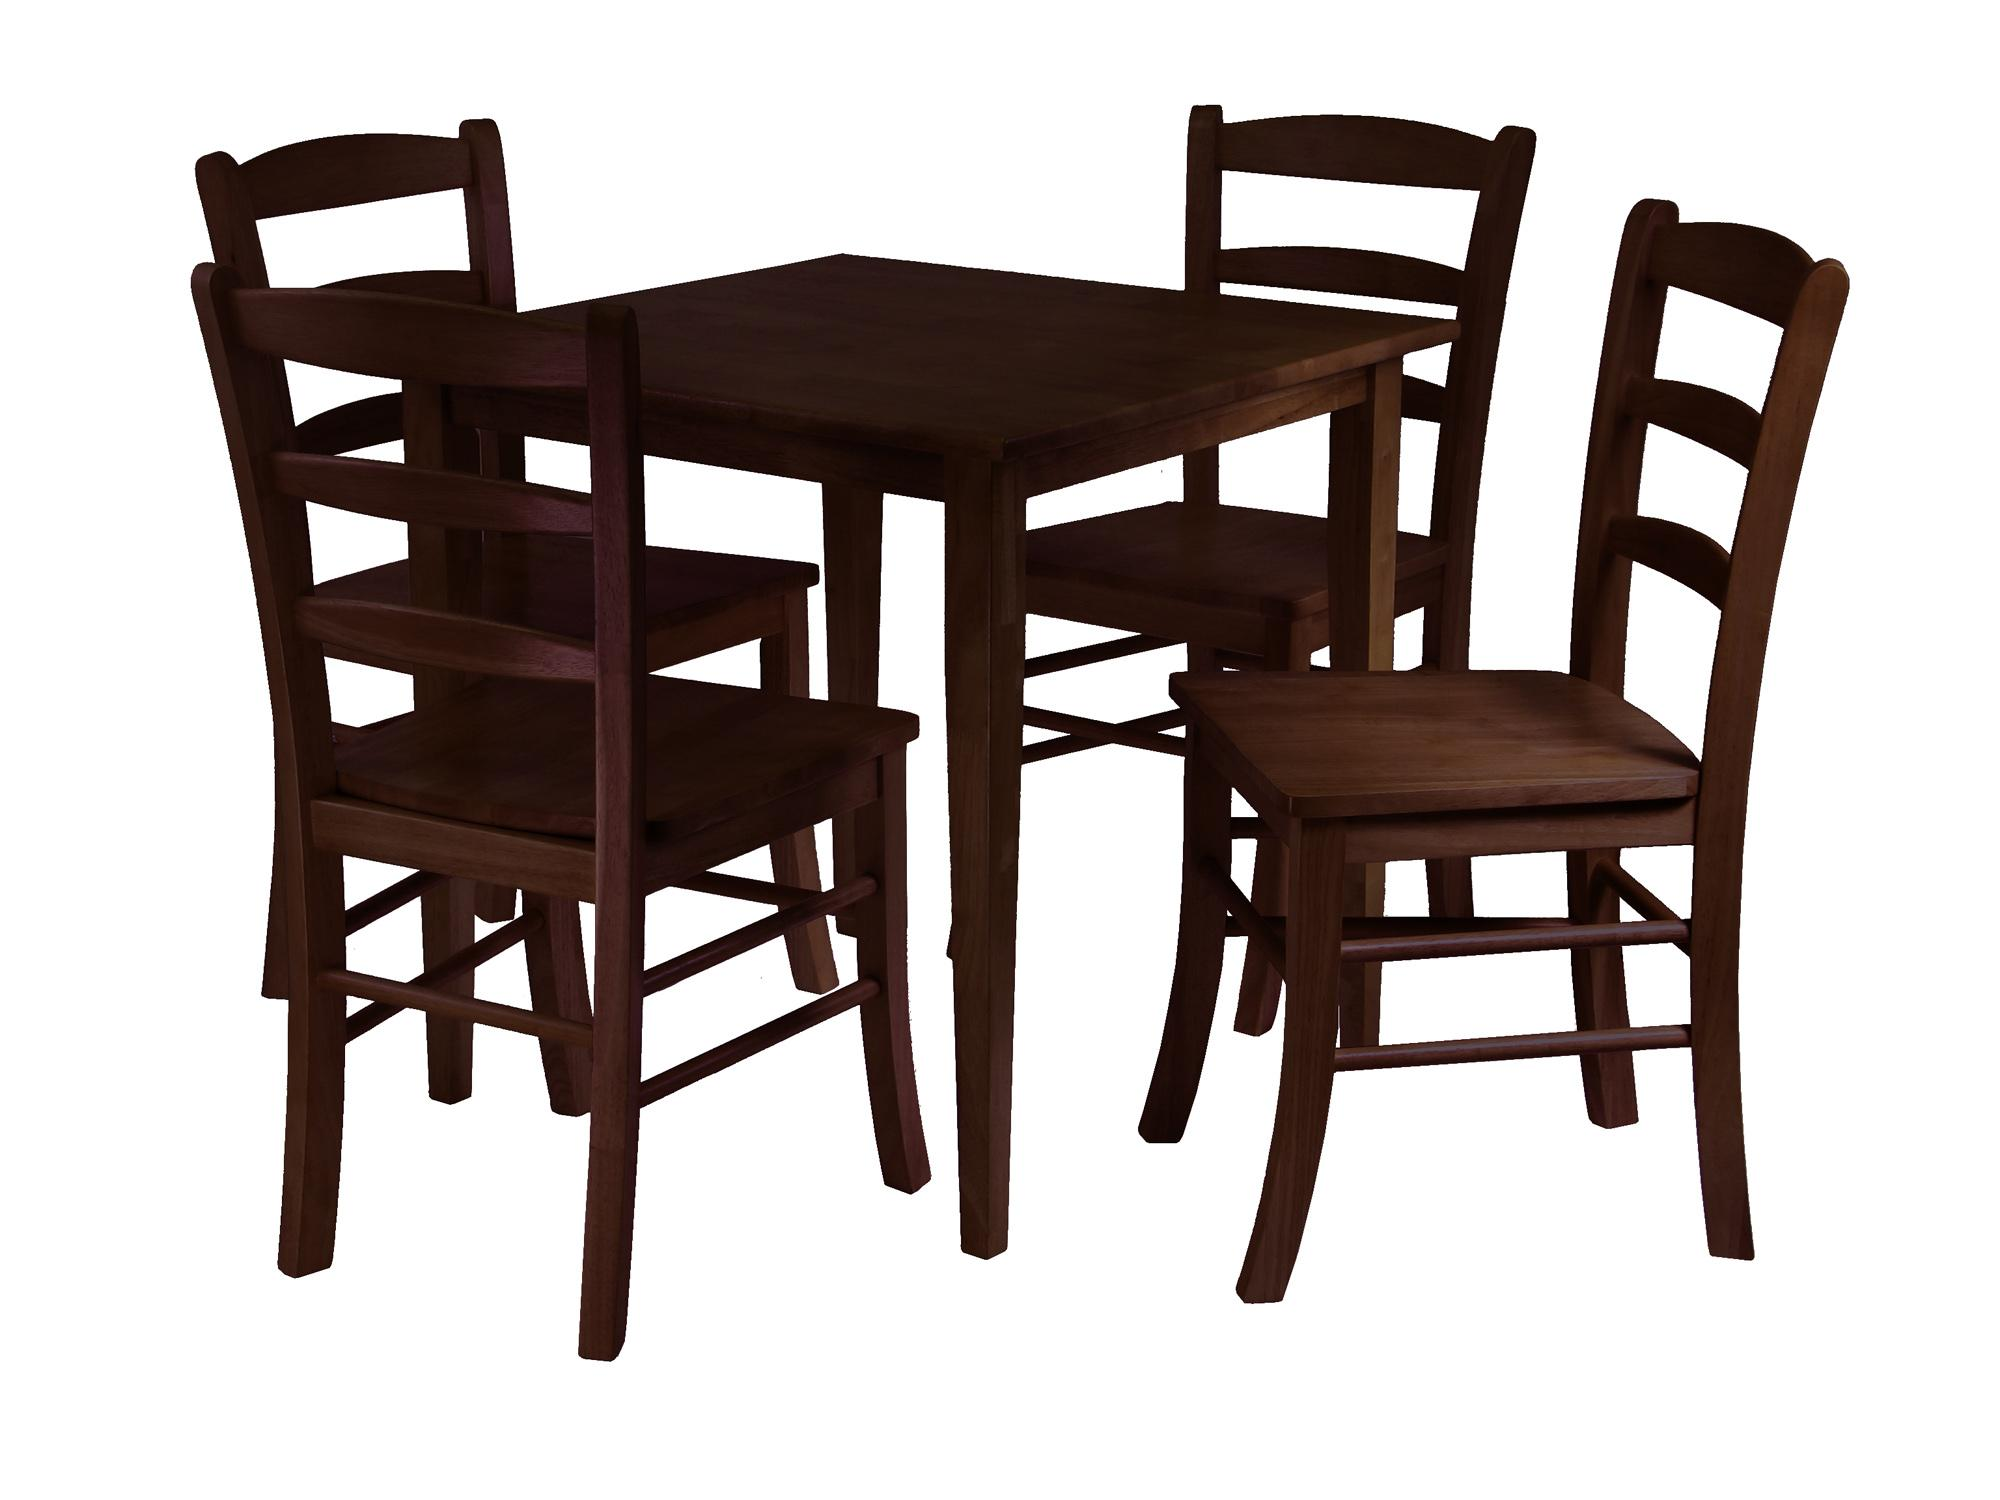 Chair clipart dining room chair, Chair dining room chair